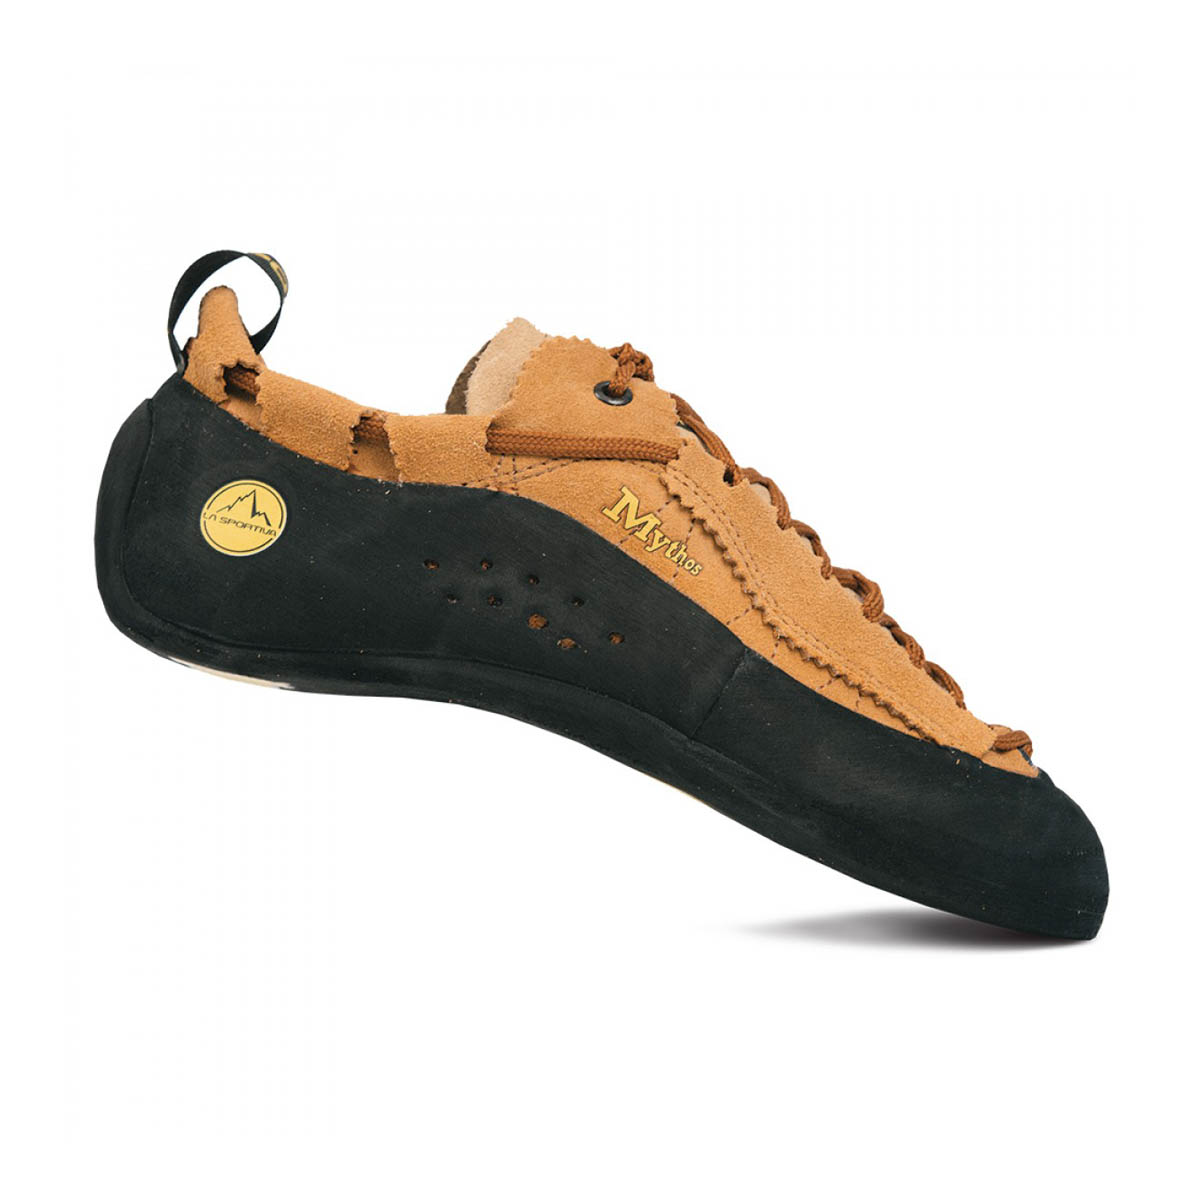 la sportiva mythos climbing shoes epictv shop. Black Bedroom Furniture Sets. Home Design Ideas